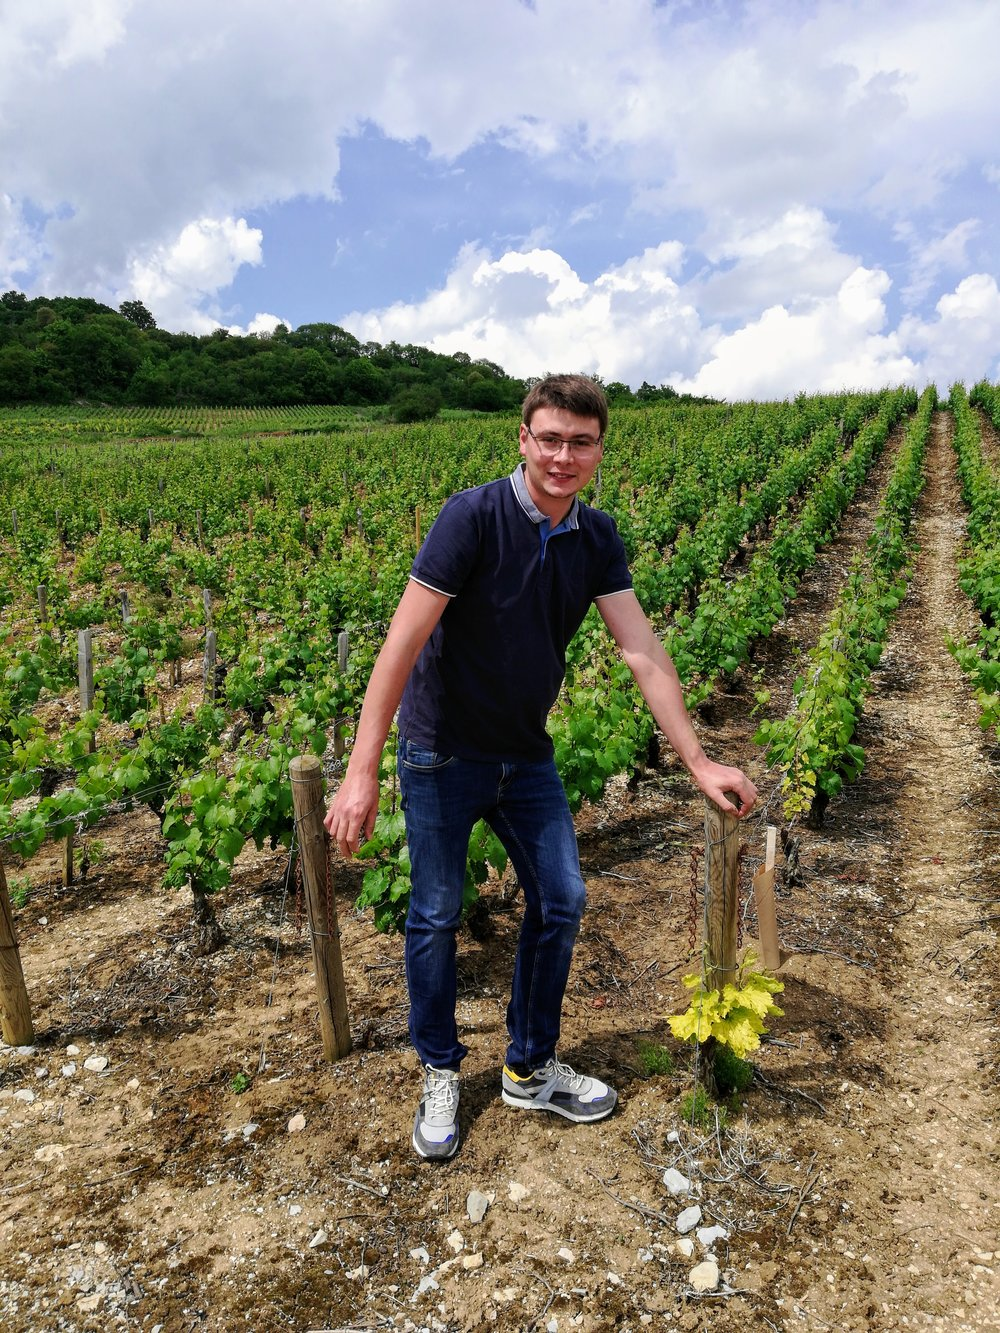 Meet the winemaker! - A Romain at Saint-Romain! This young winemaker got his start in 2015 when he started to work at the domain his grandfather André Barolet opened with his grandmother Huguette Pernot years earlier. Thanks to Romain's fresh set of eyes, the domaine is developing and modernizing. The upcoming harvests will be processed by the new press and winery.